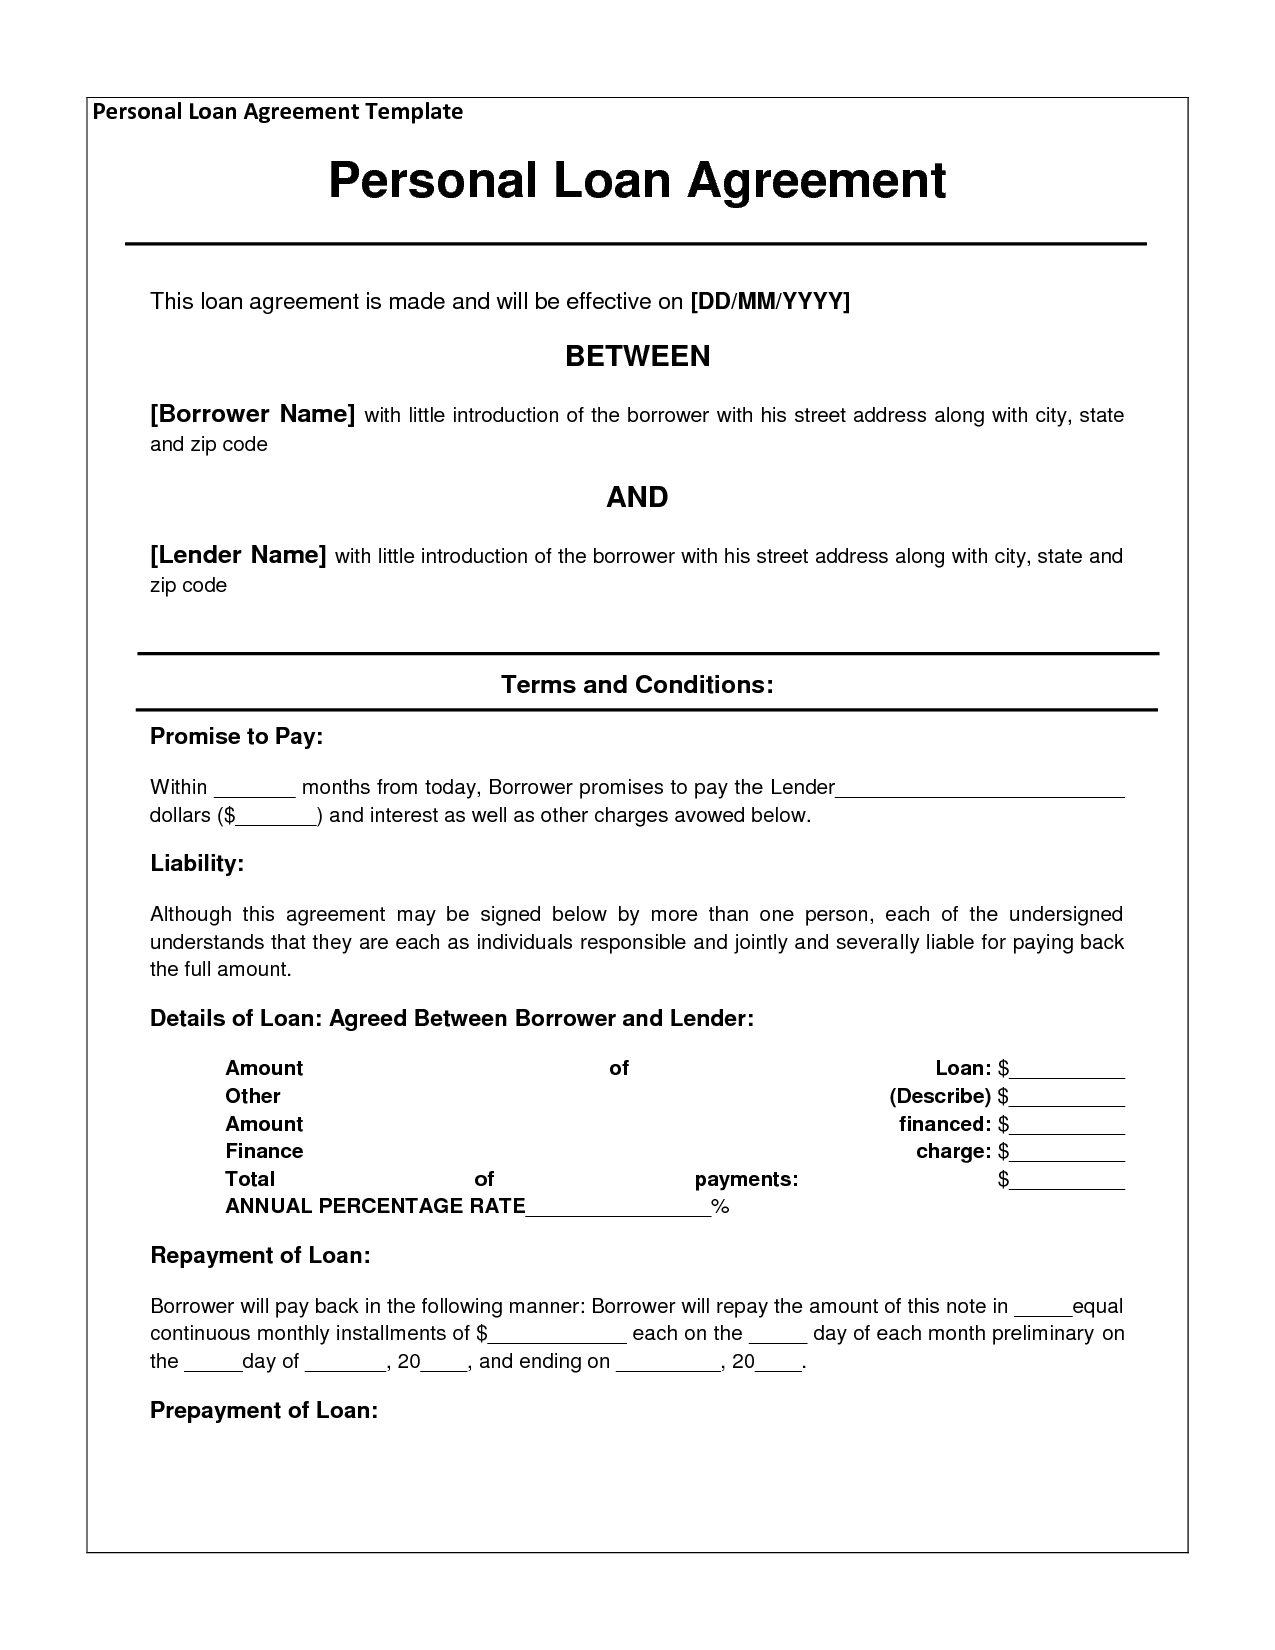 Sample Loan Contract 5 Loan Agreement Templates To Write Perfect Agreements,  Loan Agreement Template Loan Contract Form With Sample, Loan Contract  Template ...  Agreement Templates